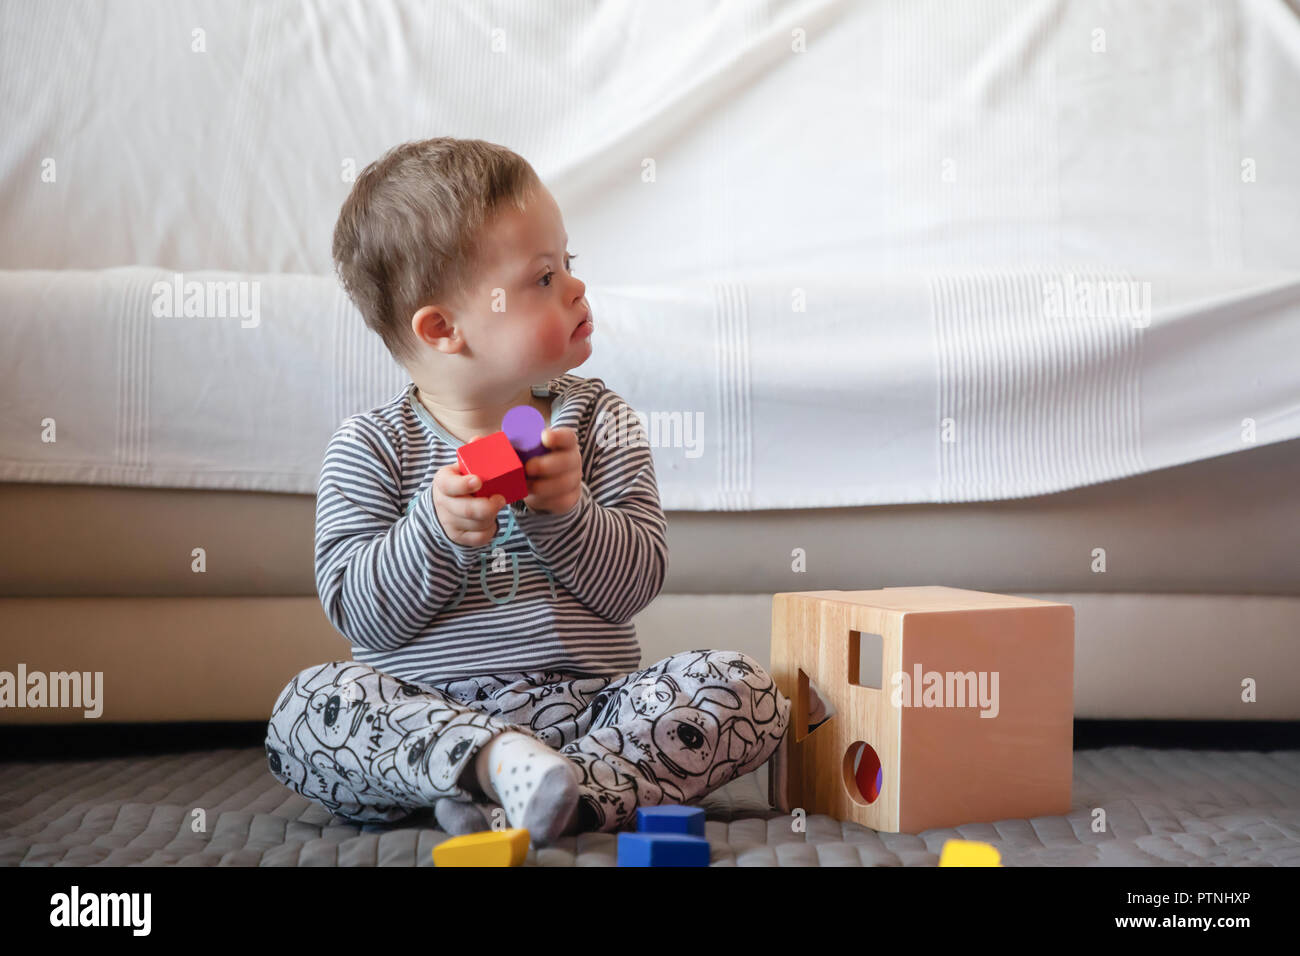 Portrait of cute boy with Down syndrome playing in home - Stock Image